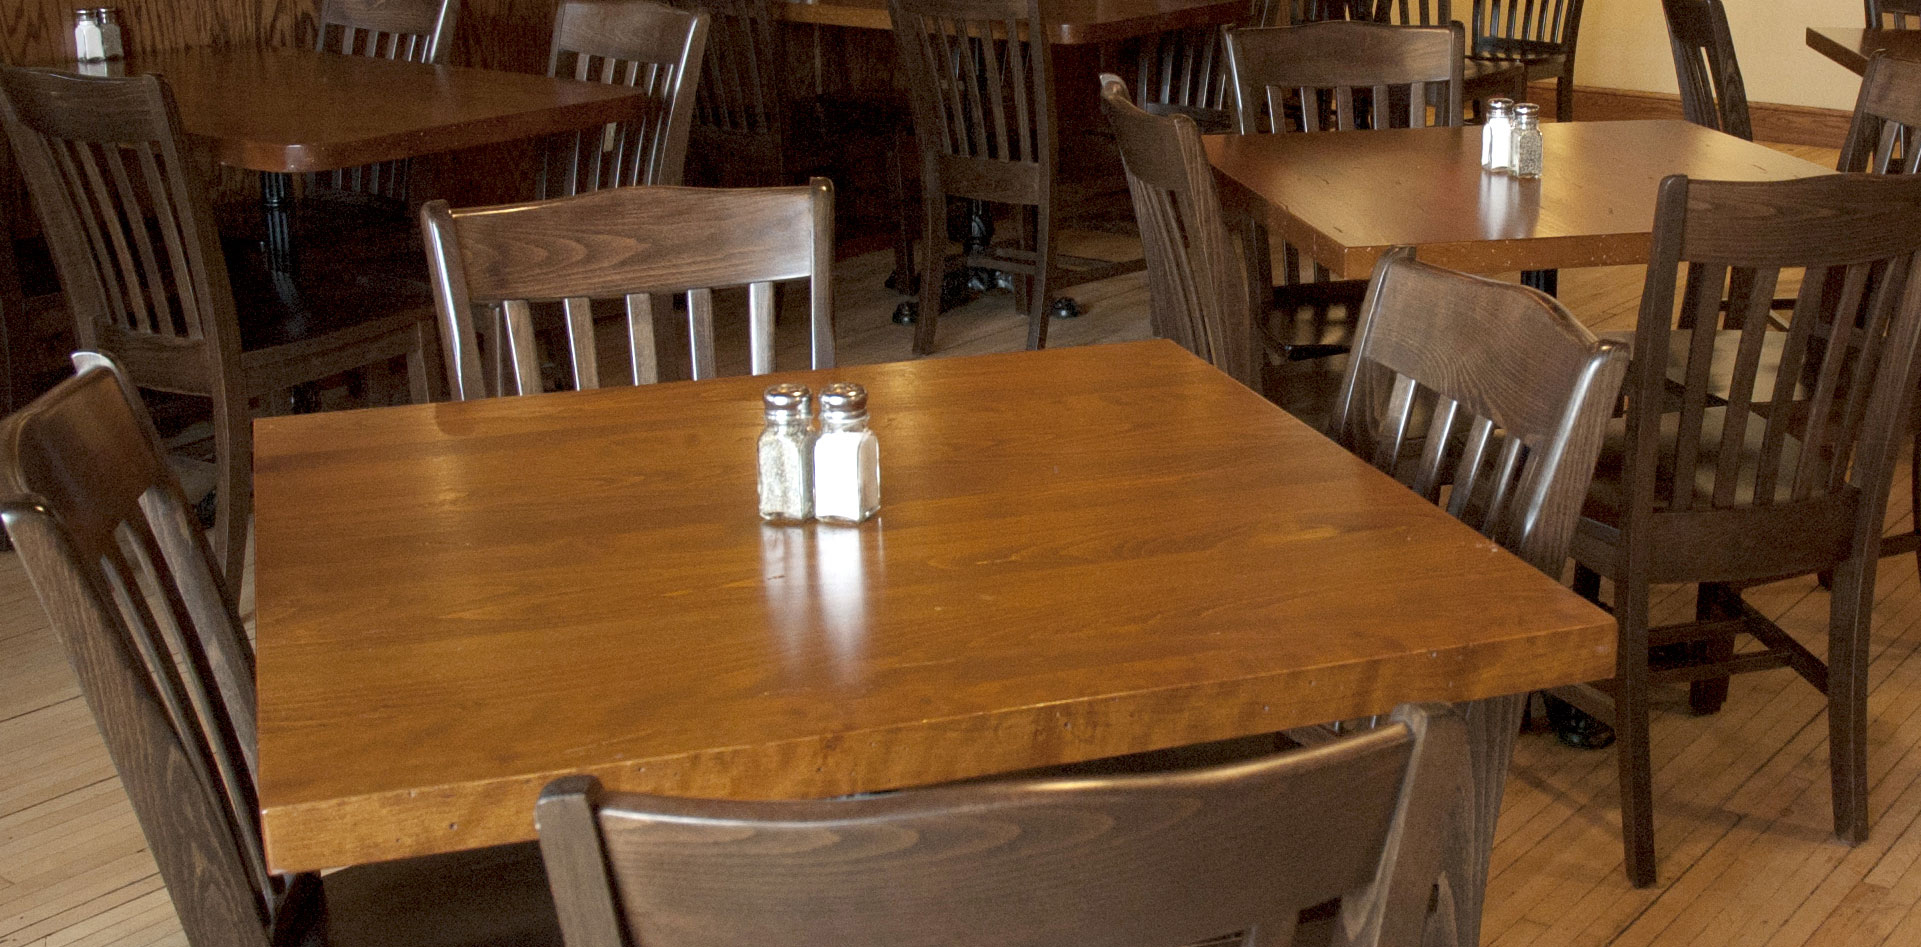 Plank Table Tops. Wood Plank Restaurant Table Tops   Wood Restaurant Tables  Solid